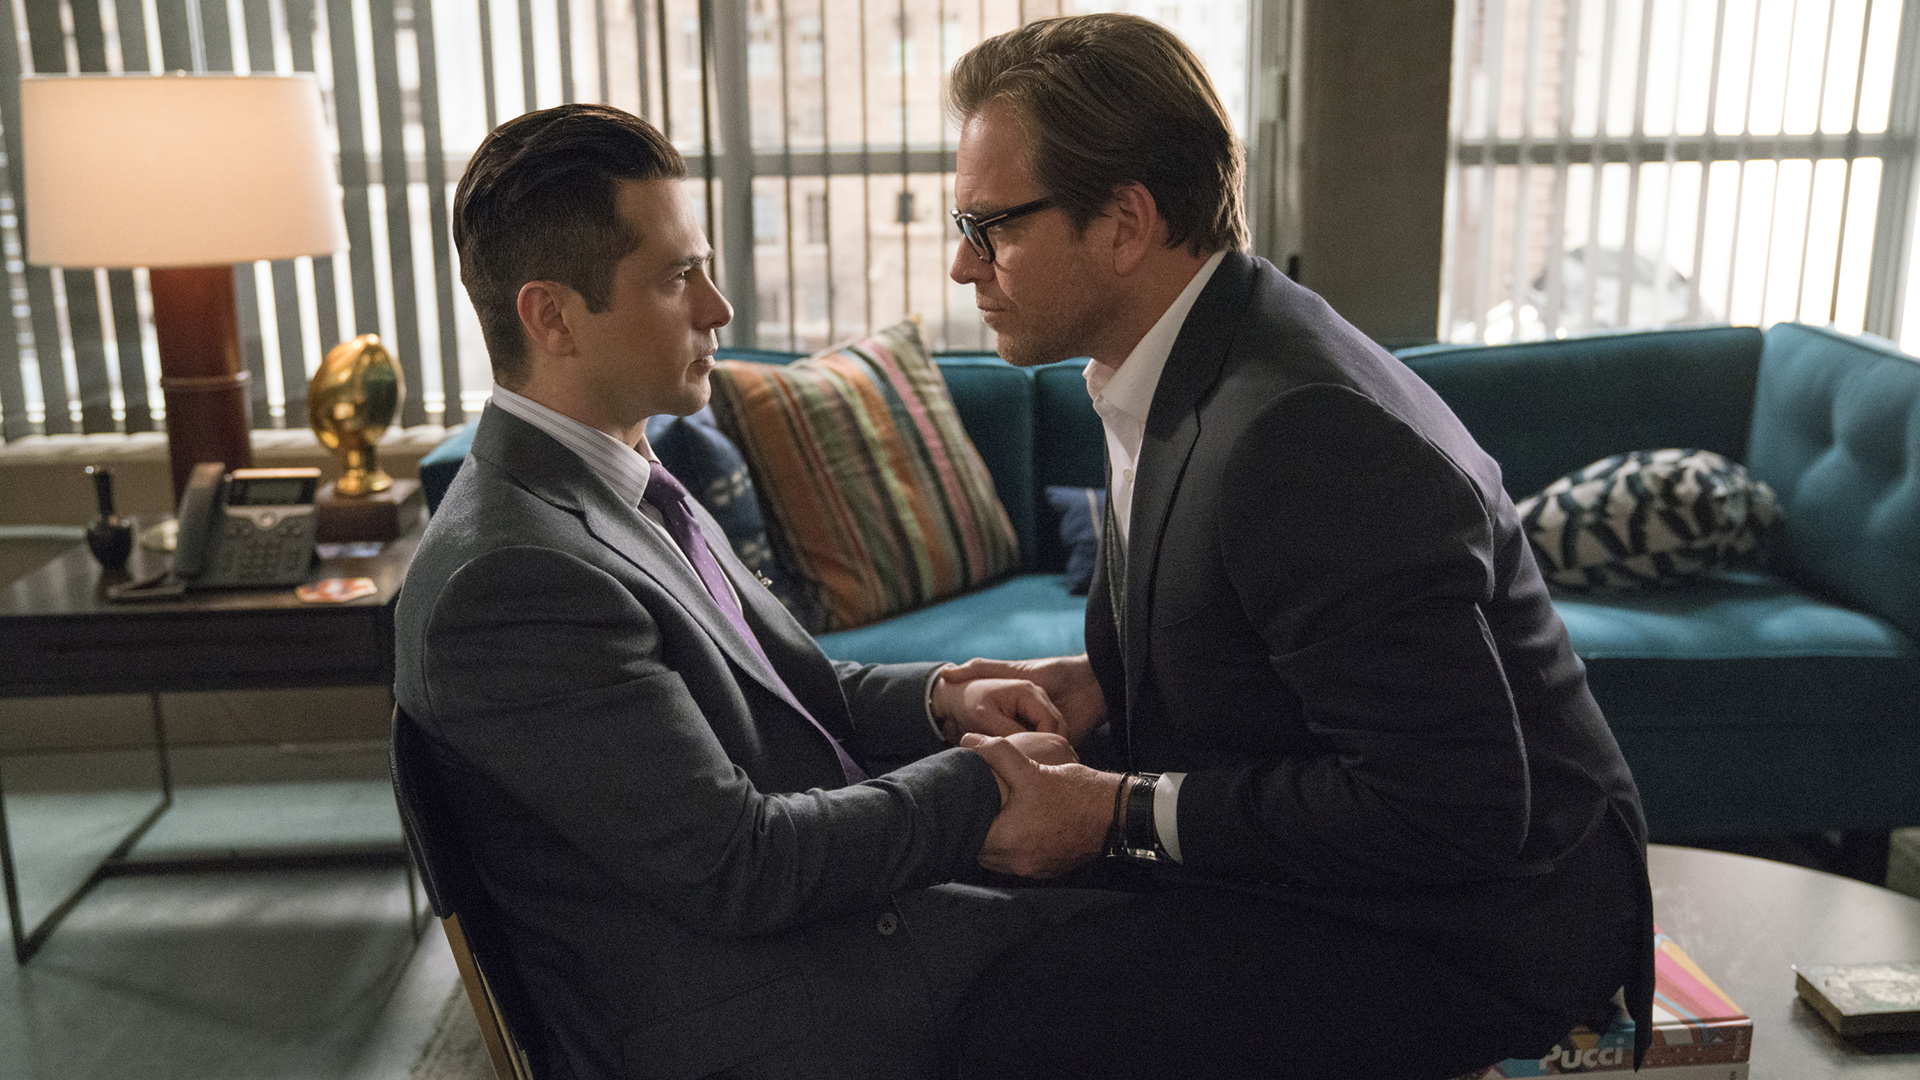 Bull tries to work around Benny's gag order to find out more about the case.